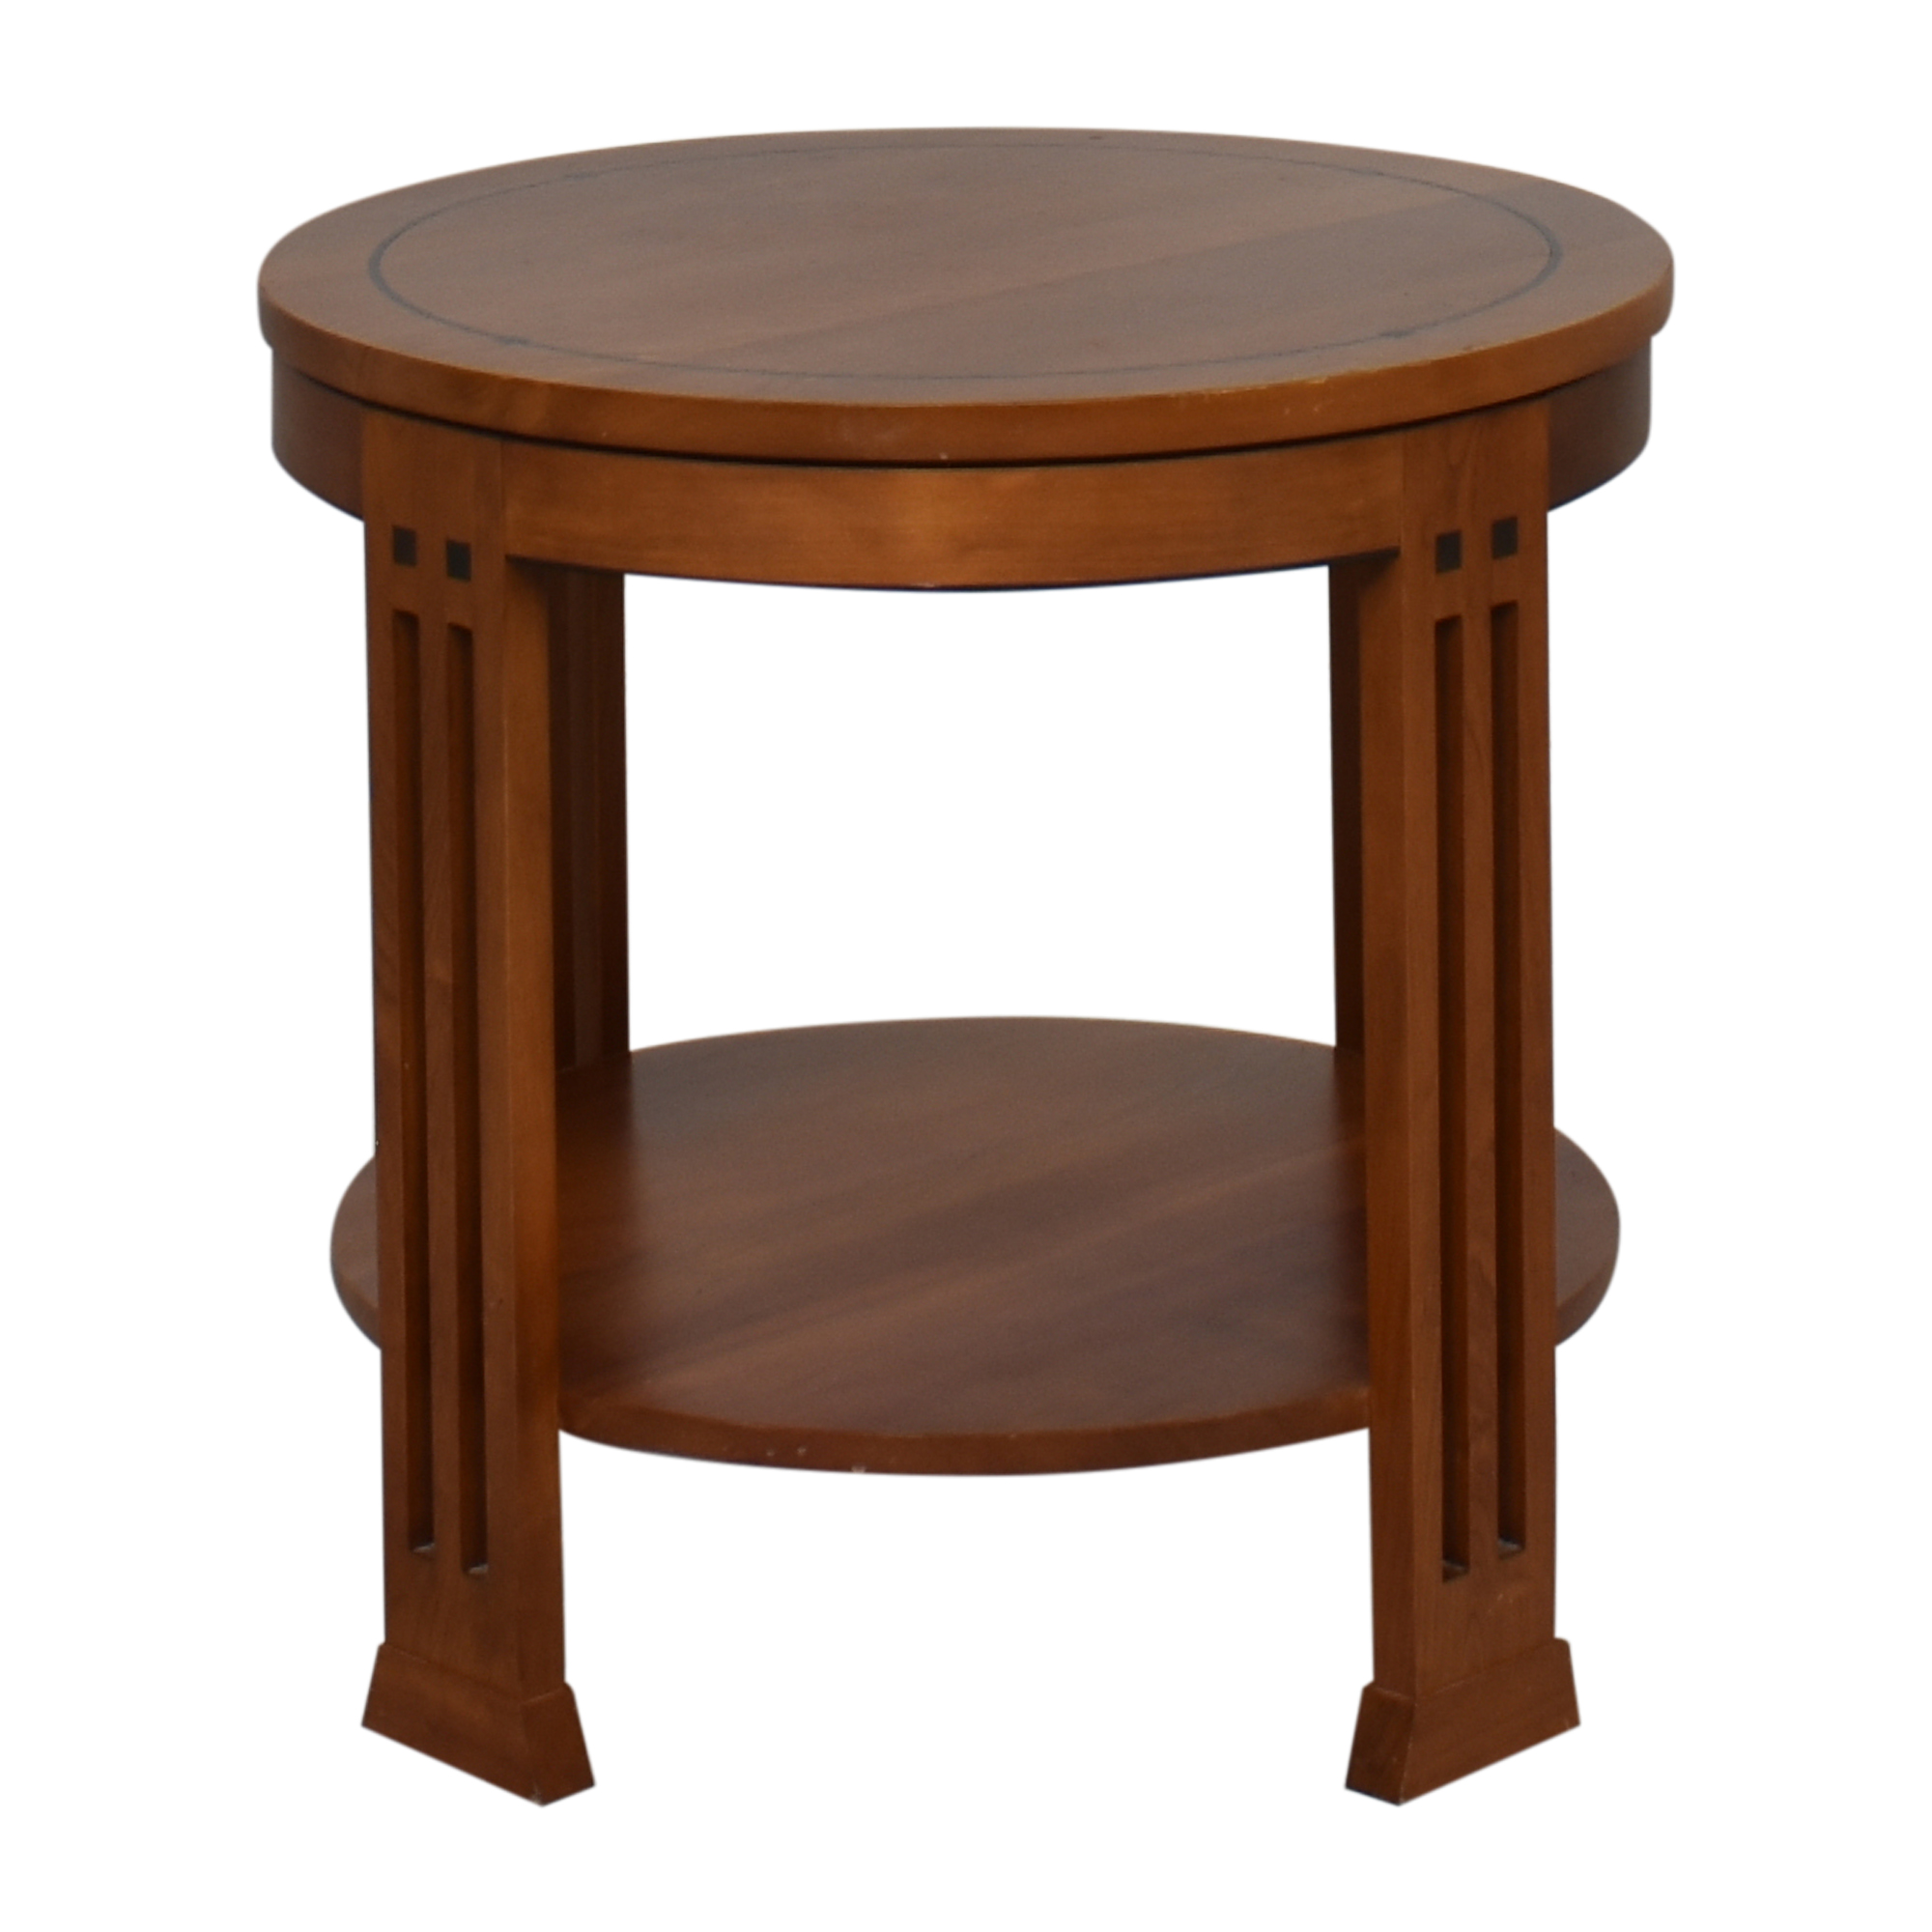 Stickley Furniture Stickley Furniture Round Mission End Table used